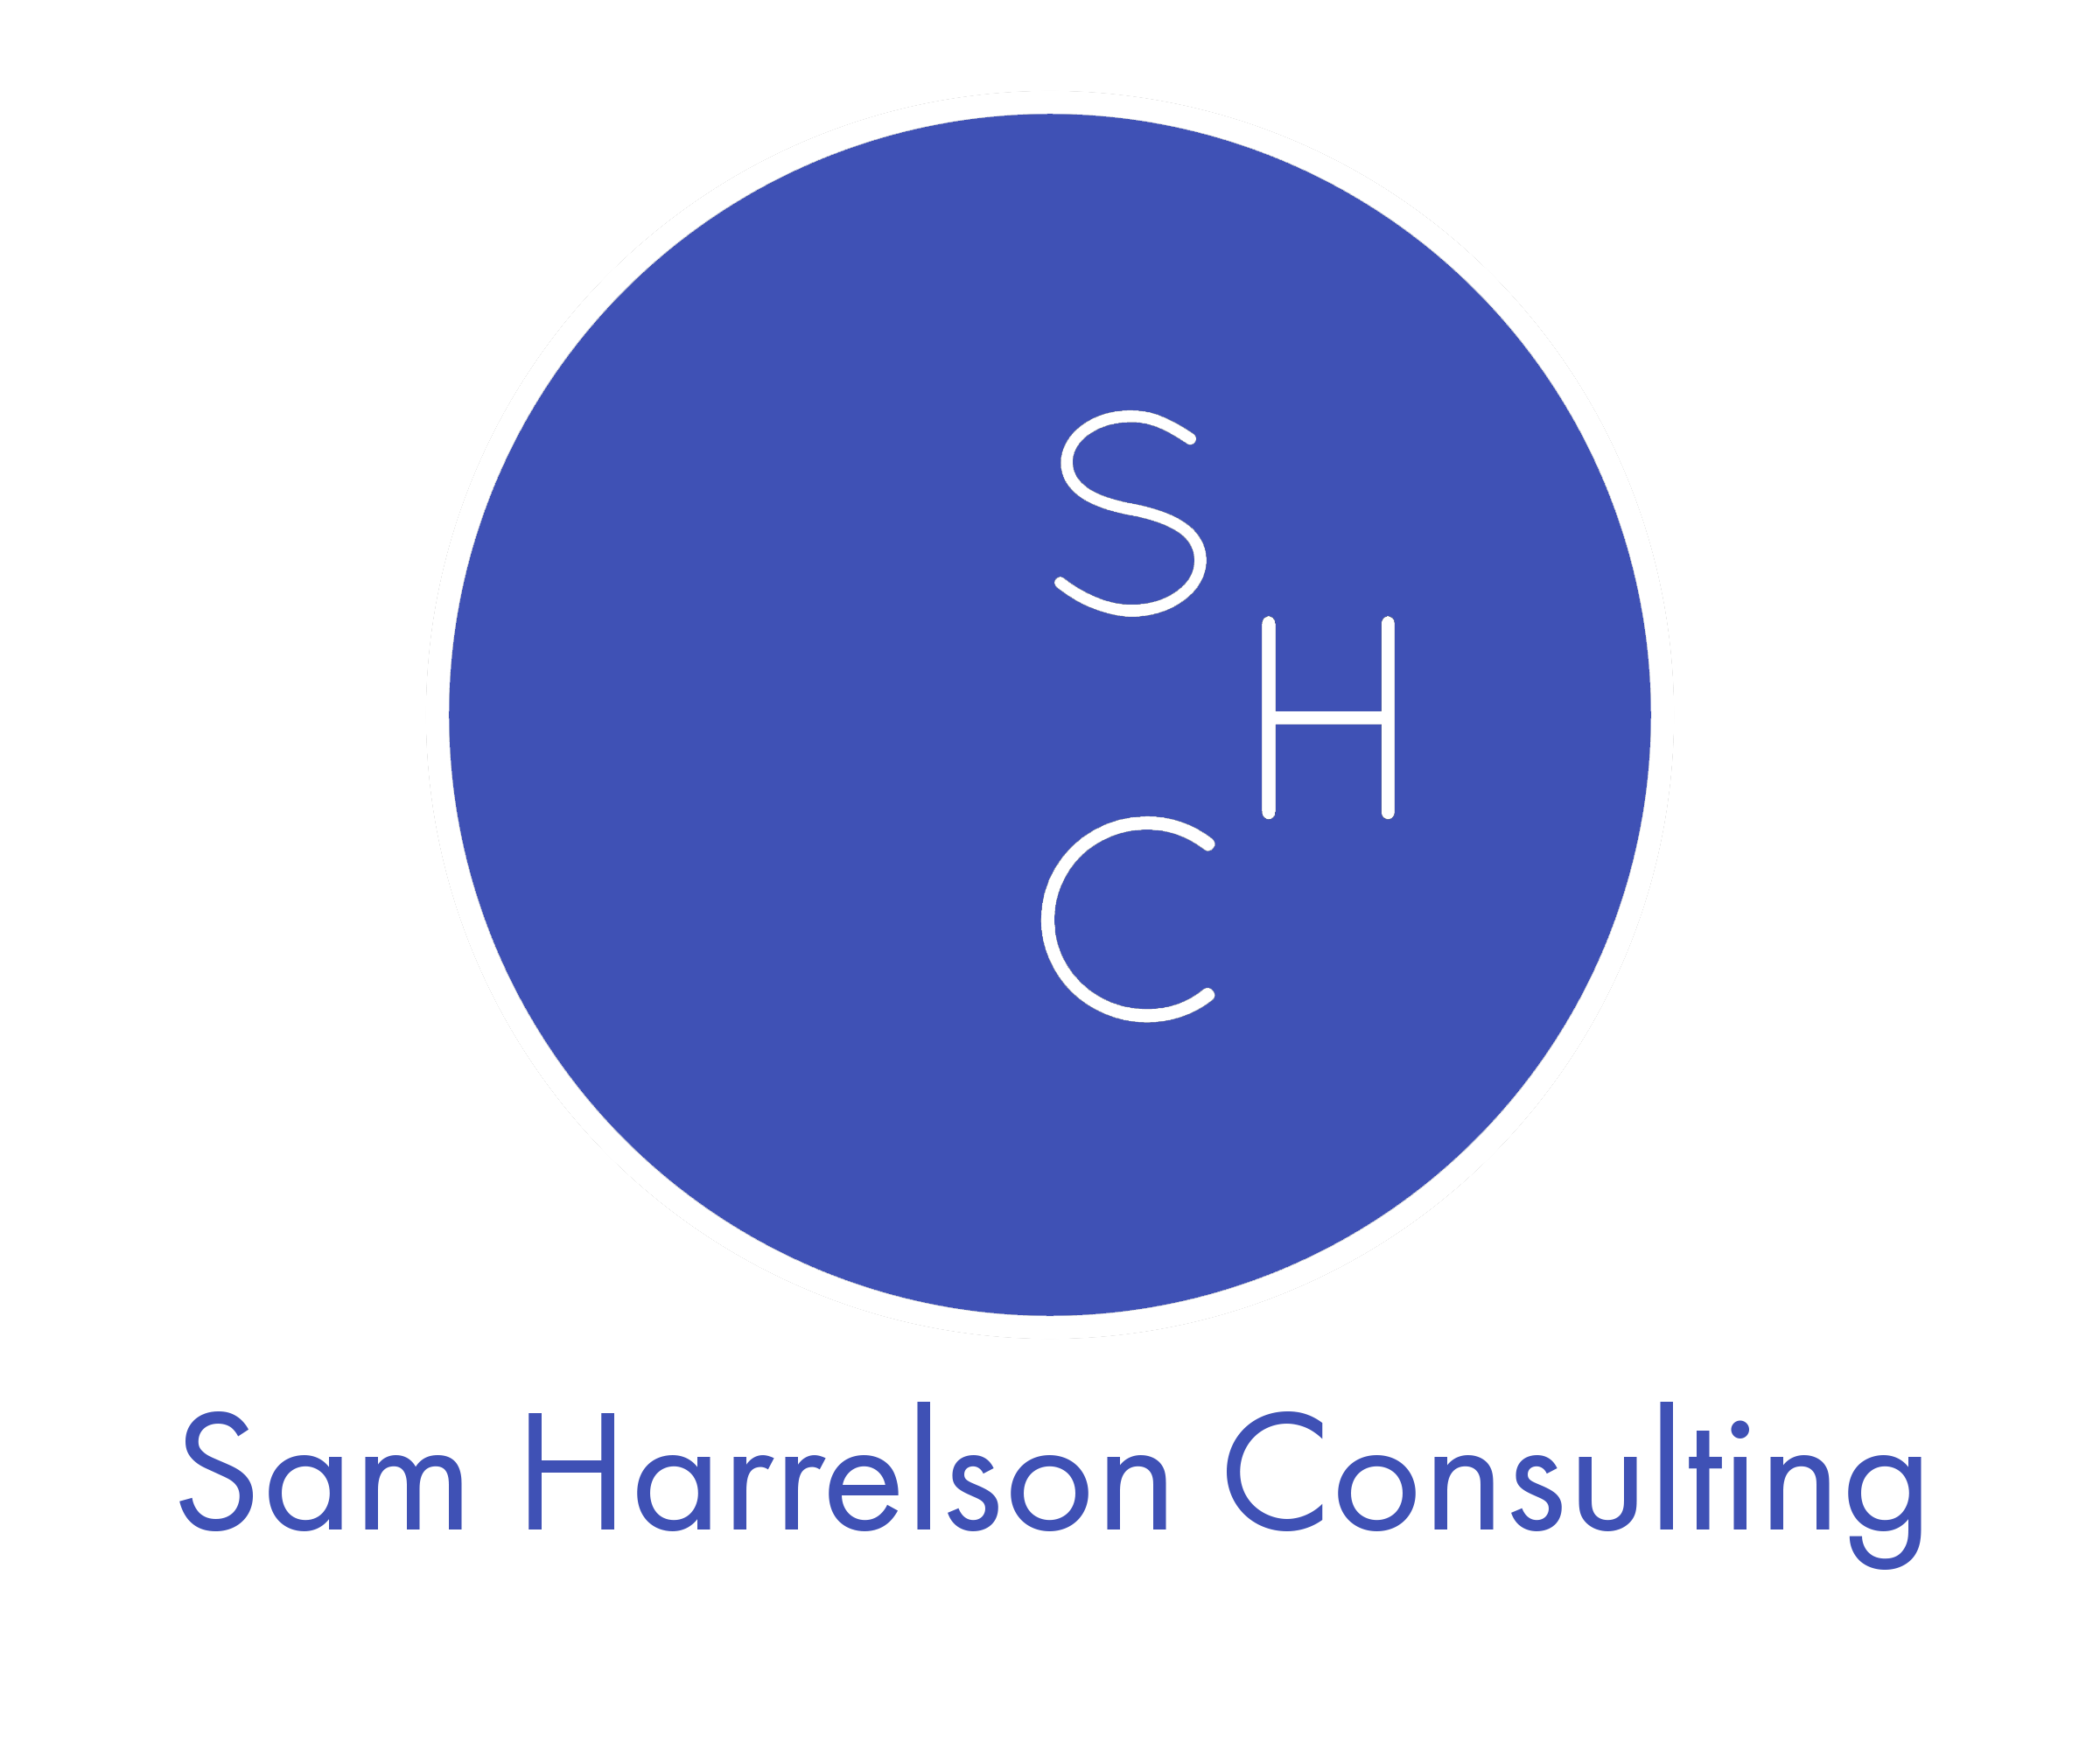 Sam Harrelson Consulting